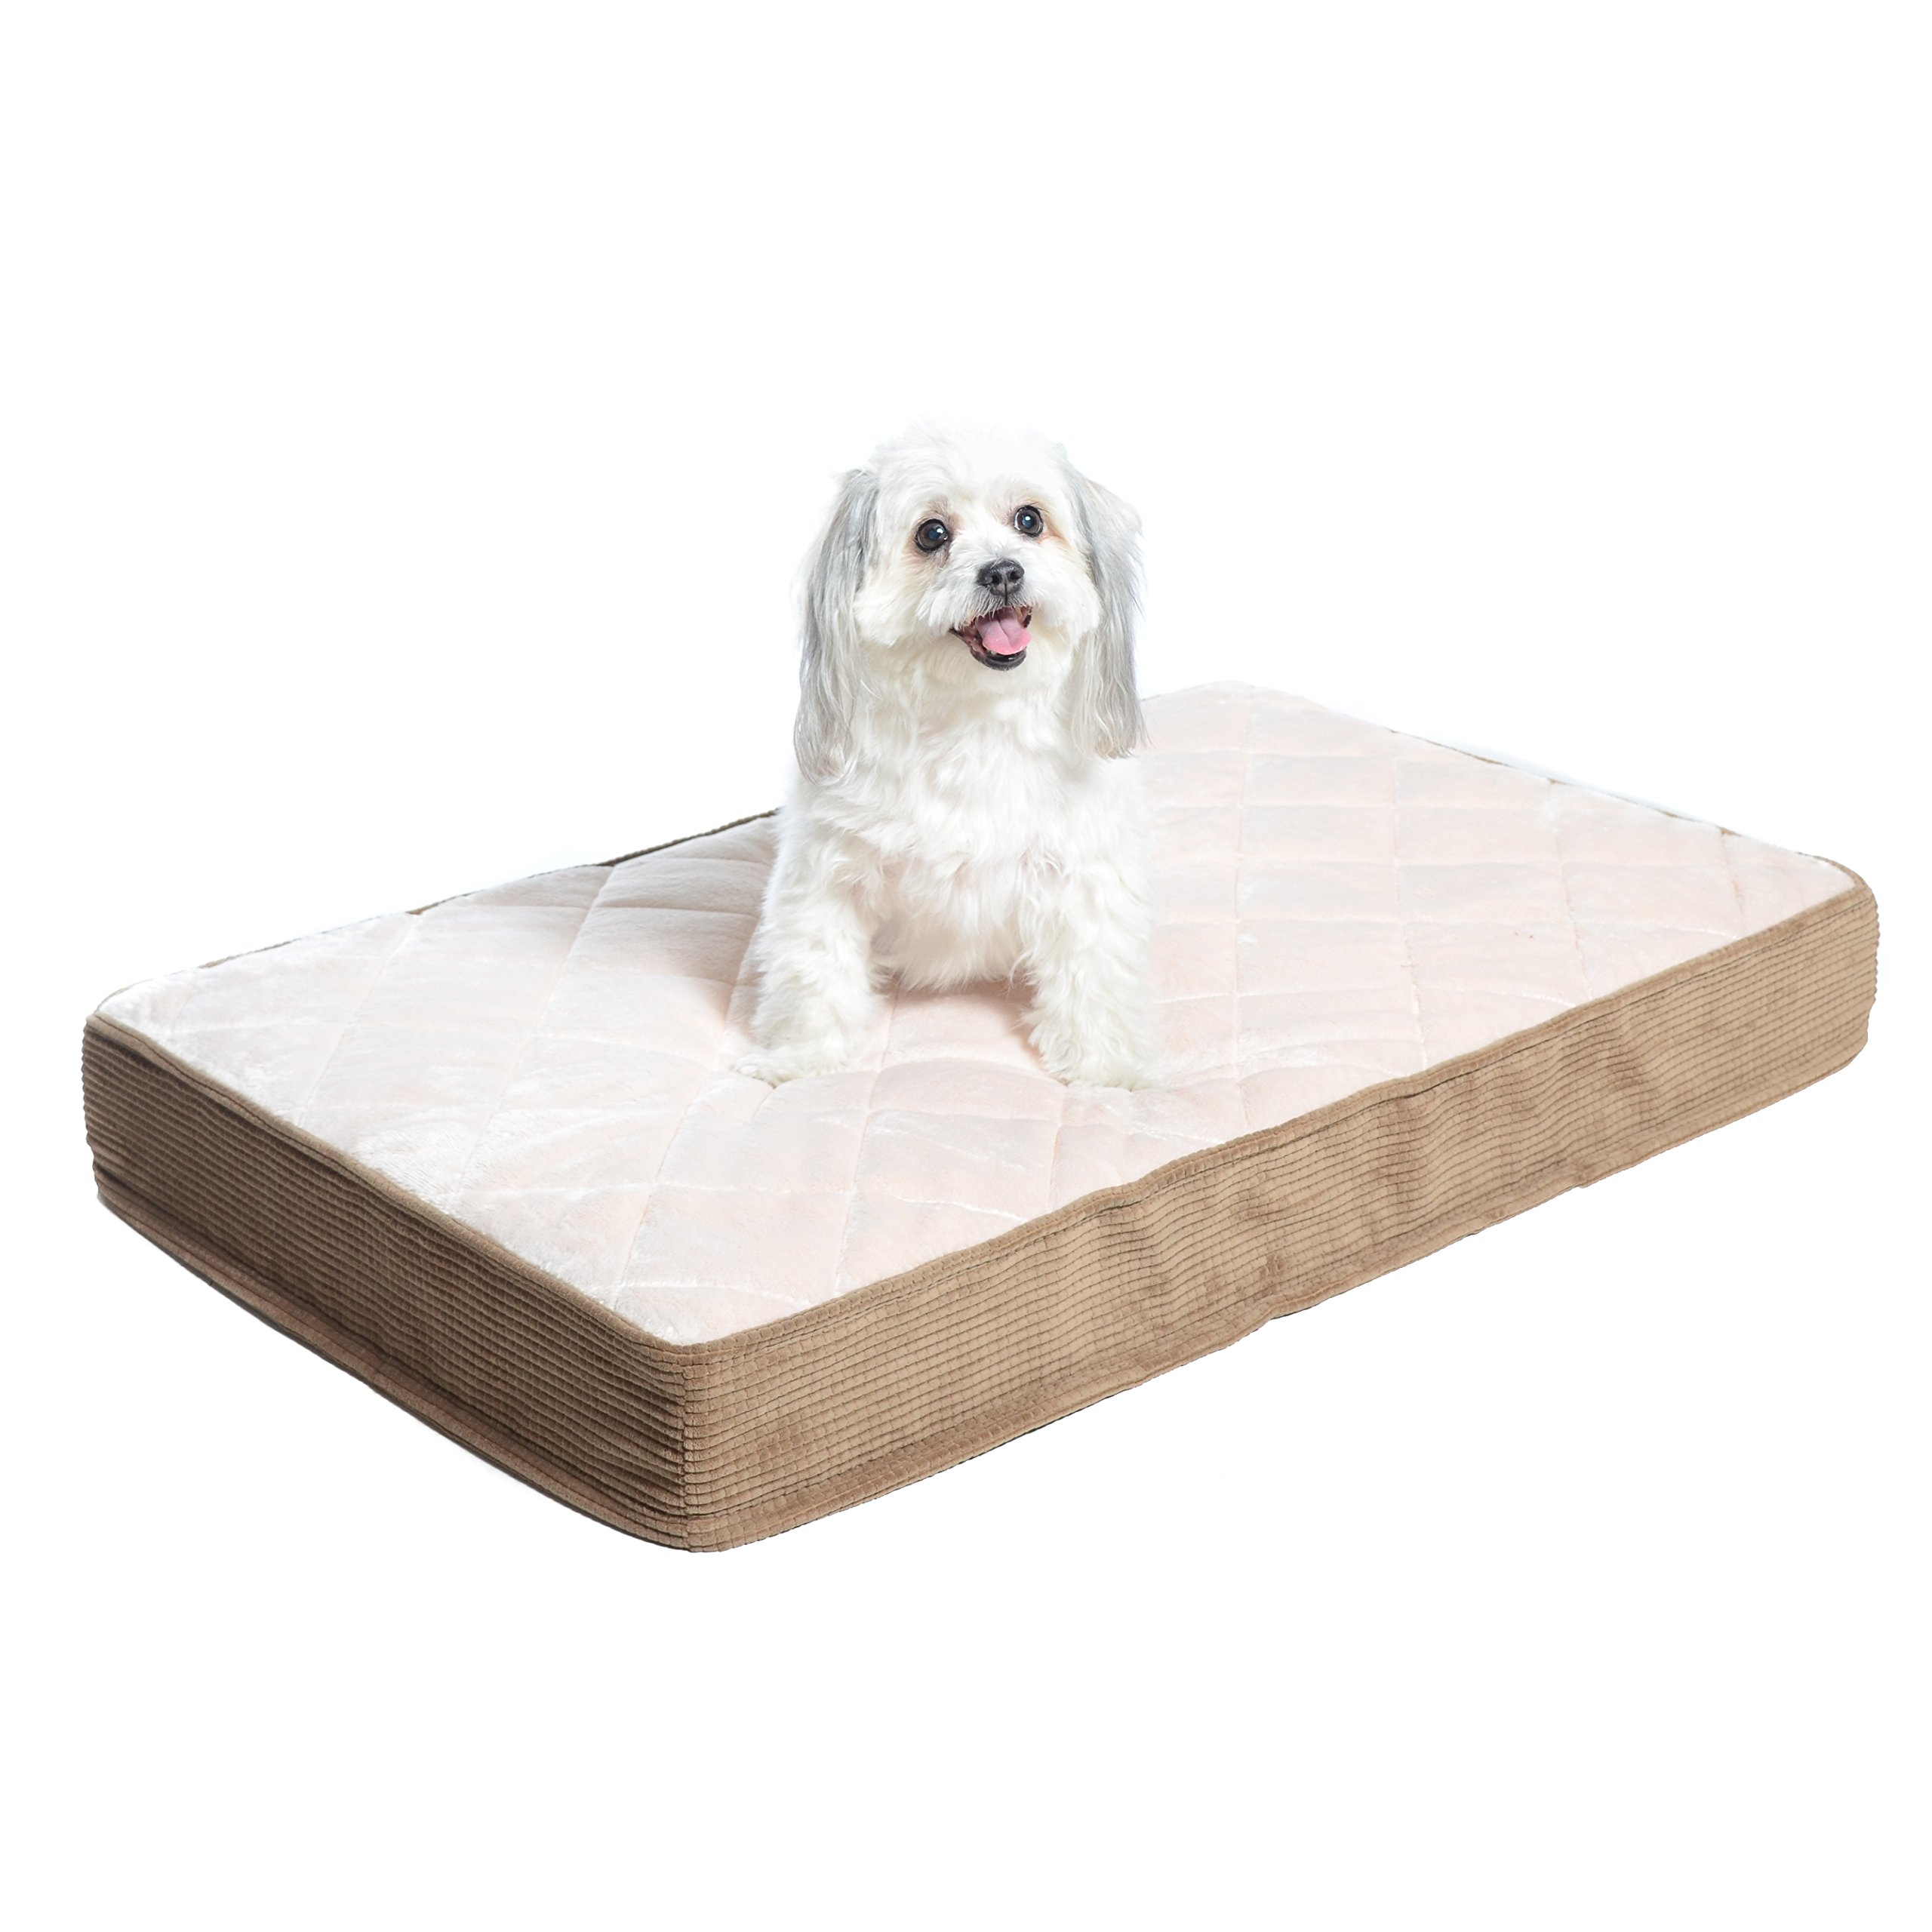 Milliard Quilted Padded Orthopedic Dog Bed, Egg Crate Foam with Plush Pillow Top Washable Cover (41 inches x 27 inches x 4 inches) by Milliard